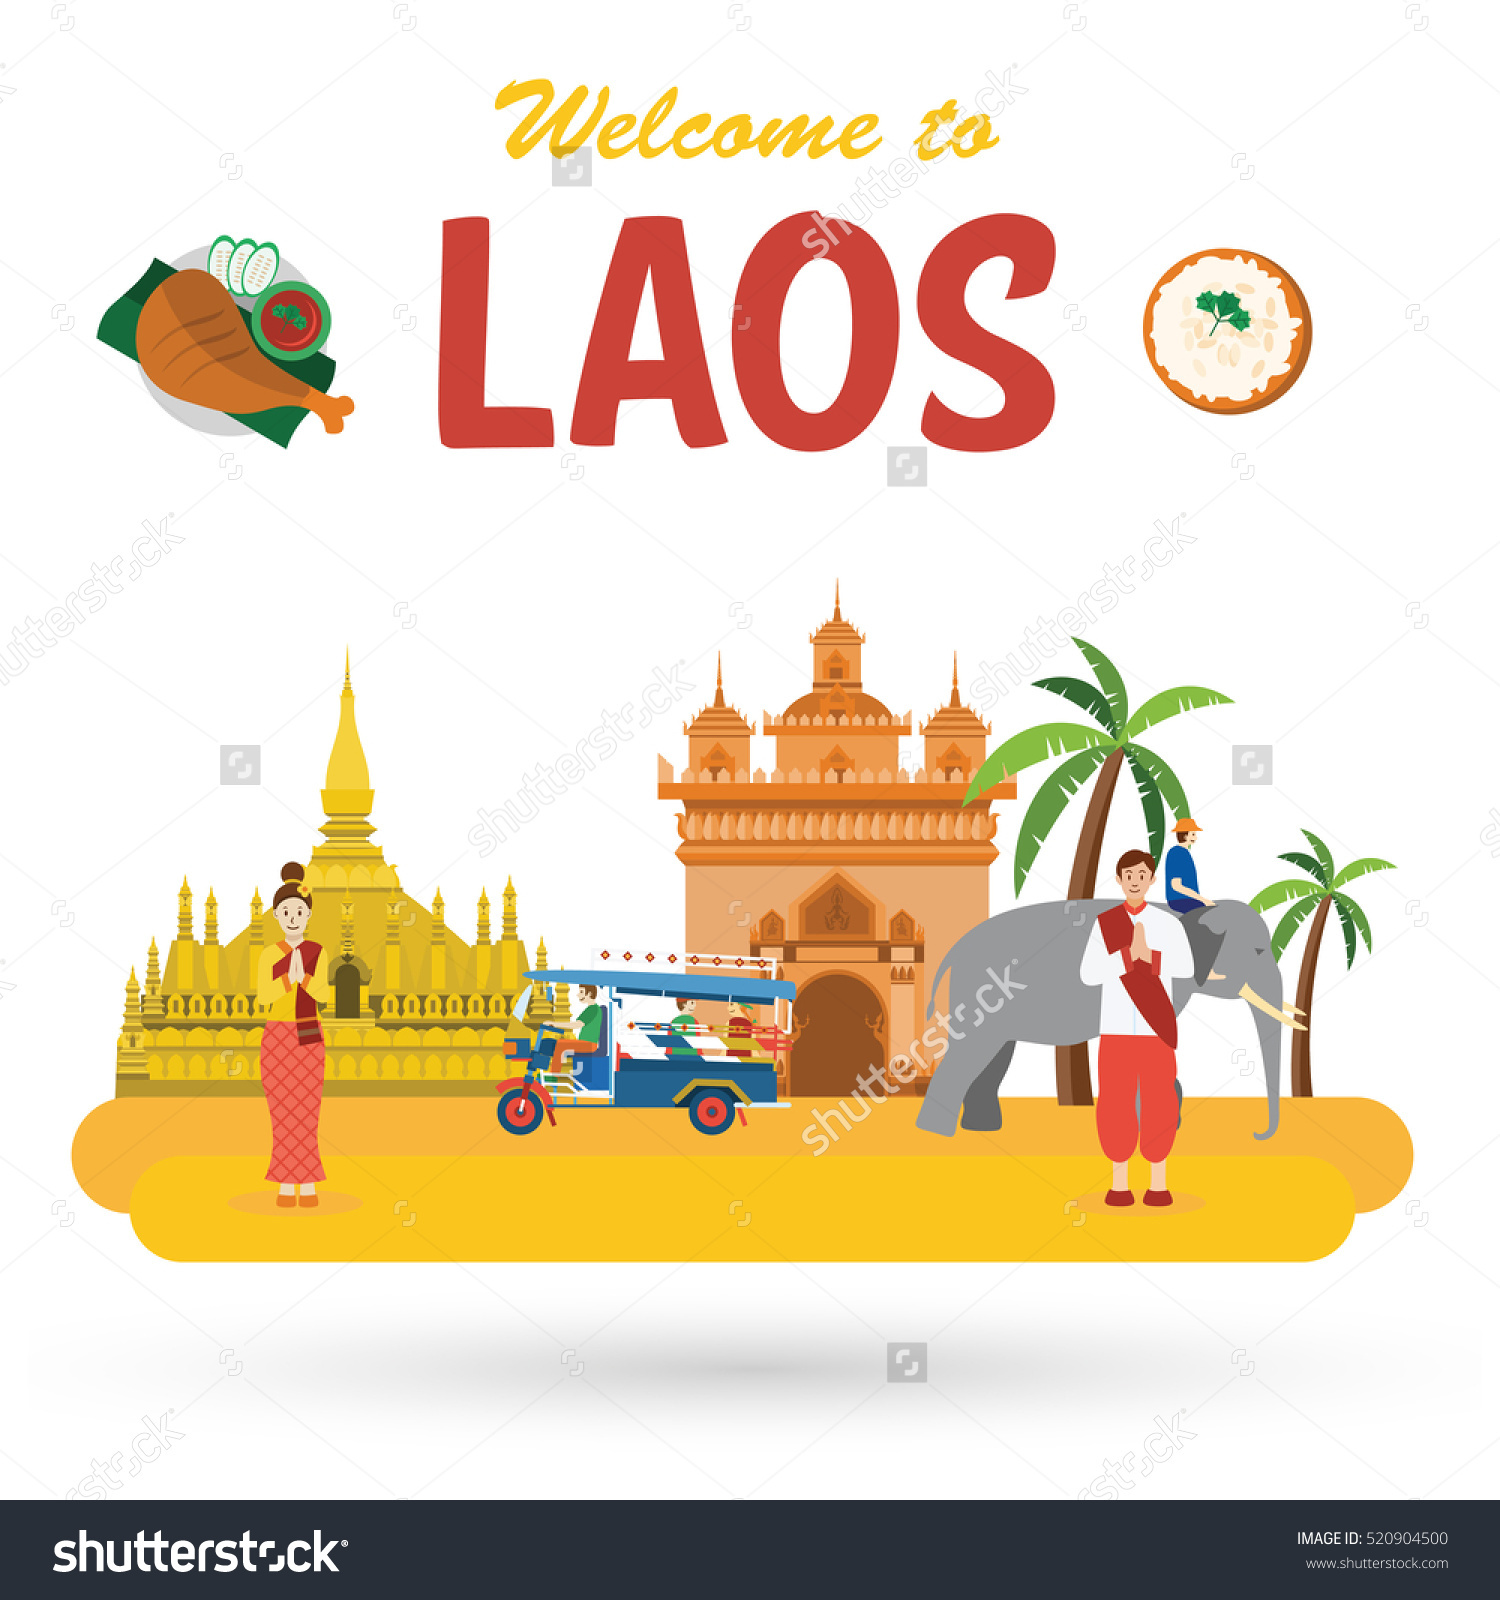 Laos travel landmarks. Flat design style. Illustration of Wat Phra.